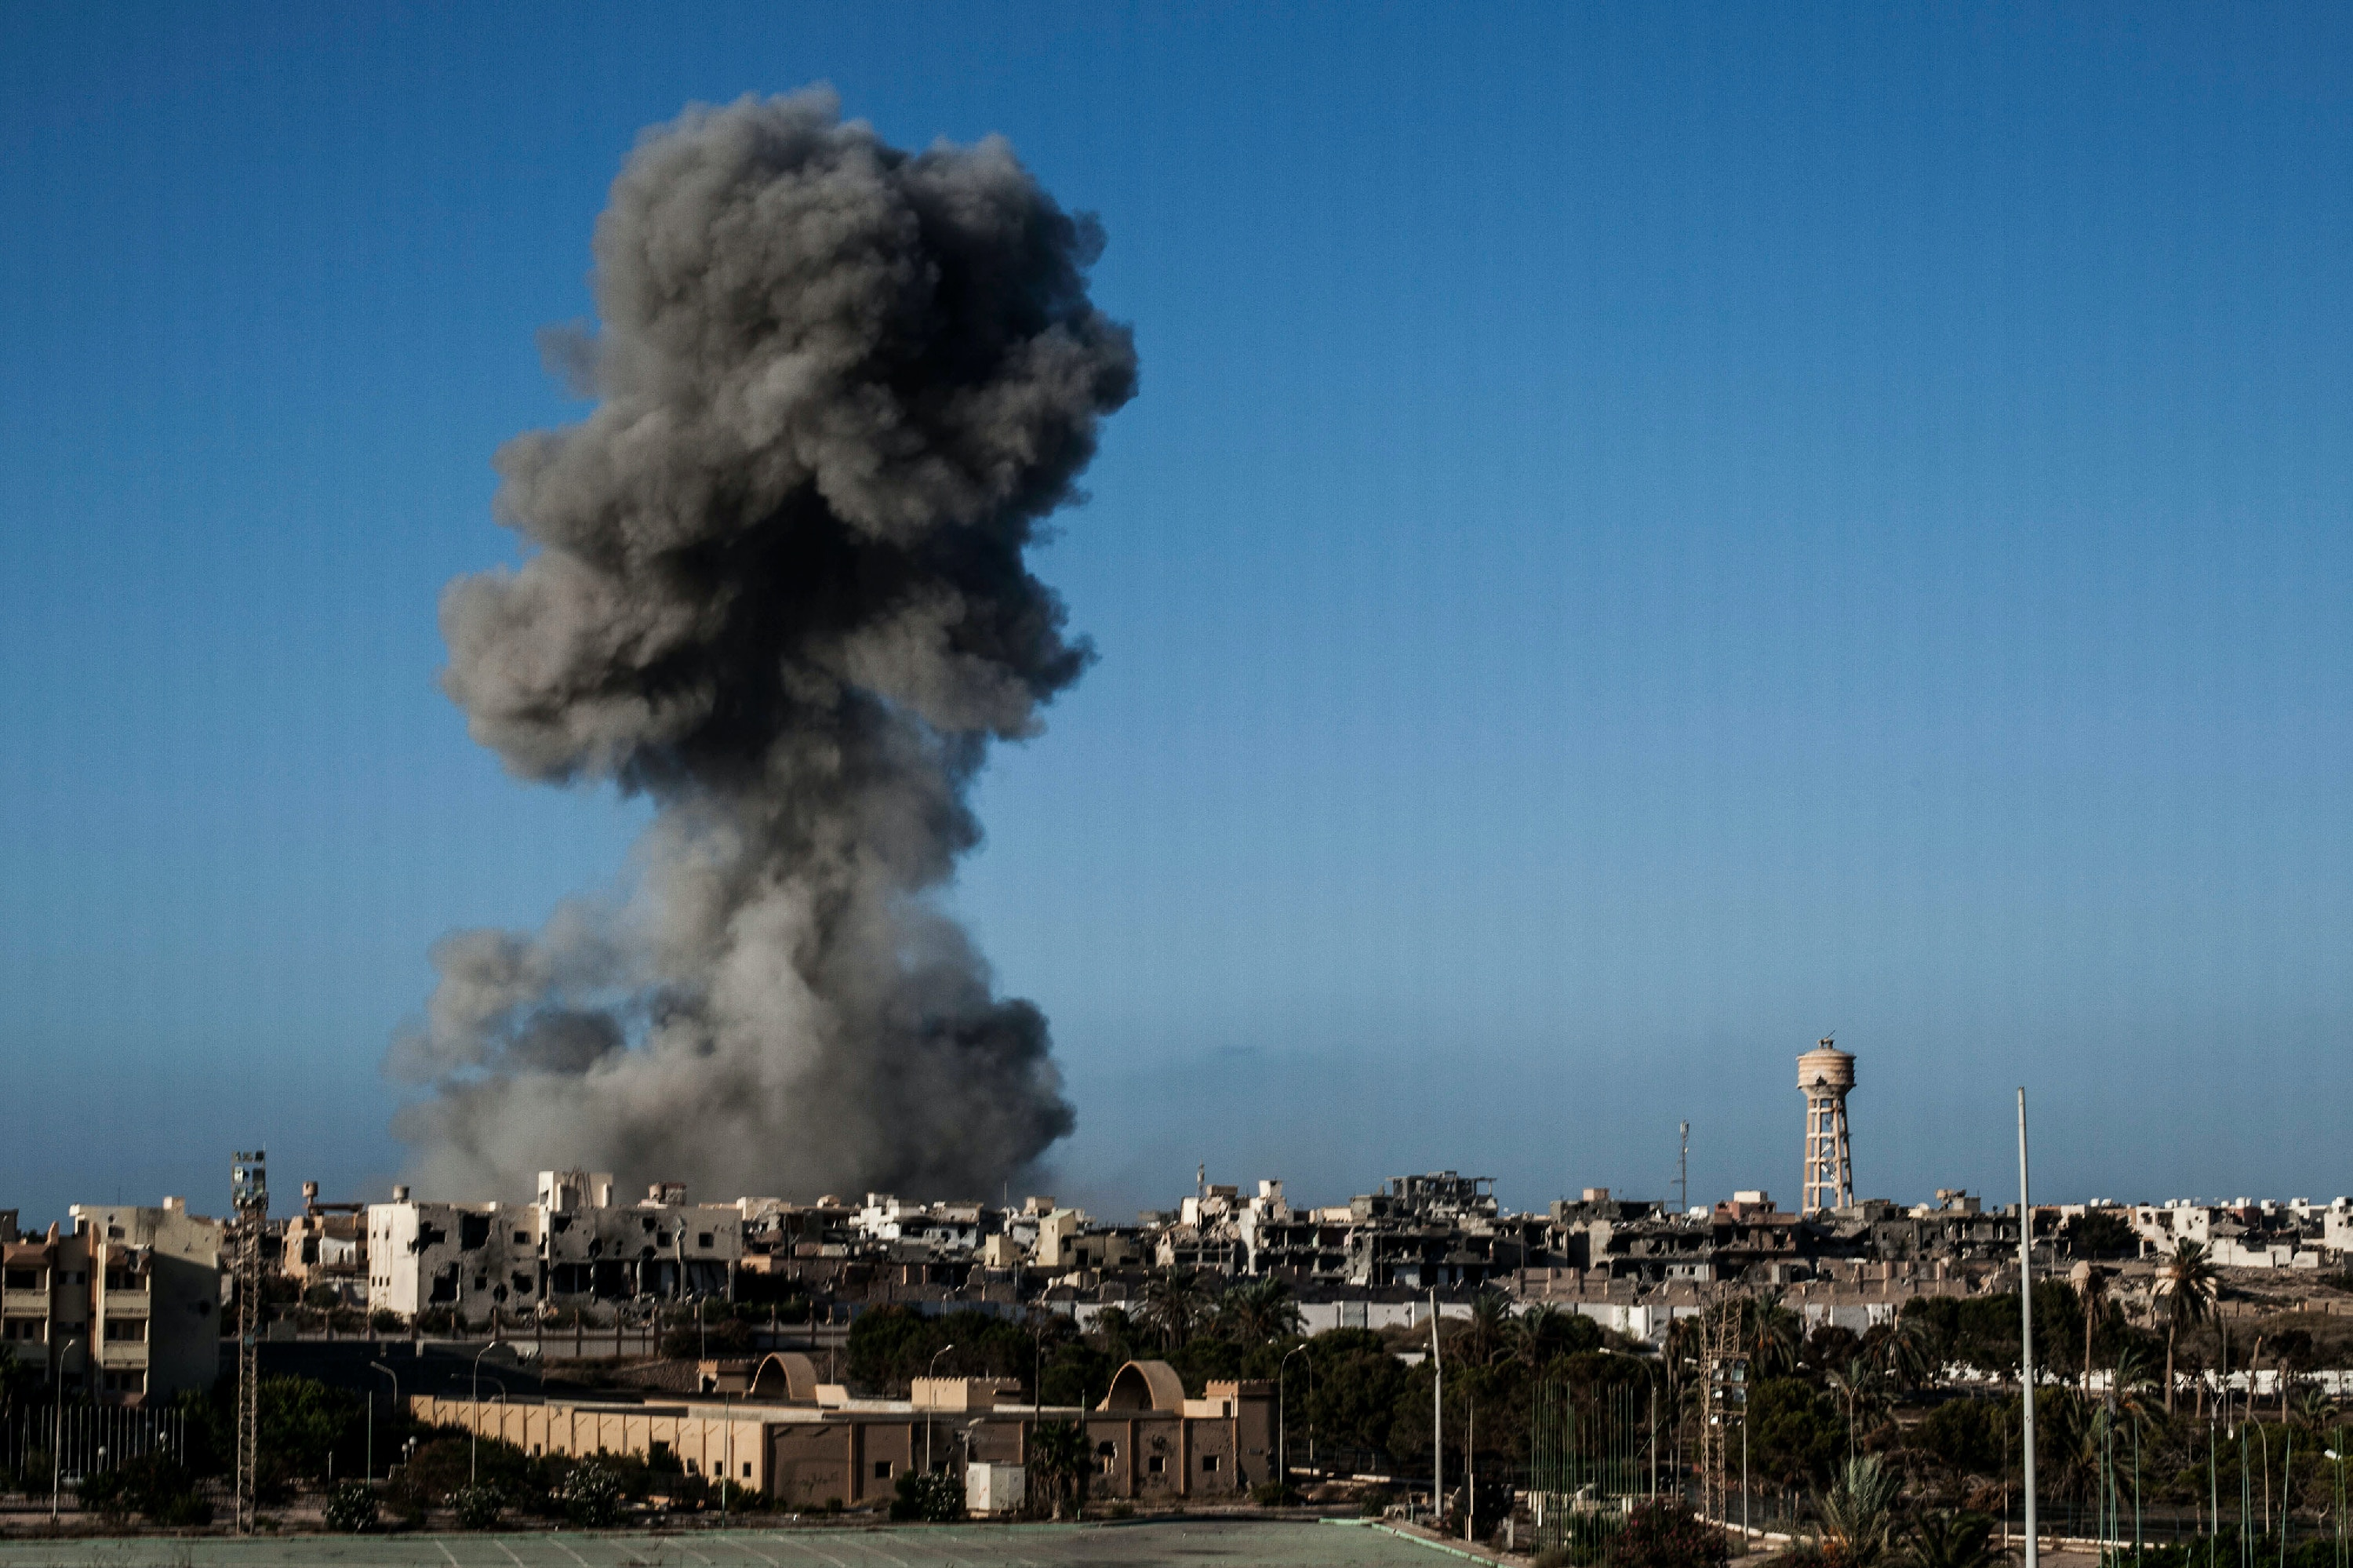 Smokes rises after an airstrike on an Islamic State militants held area in Sirte, Libya, Wednesday, Sept. 28, 2016. (AP Photo/Manu Brabo)